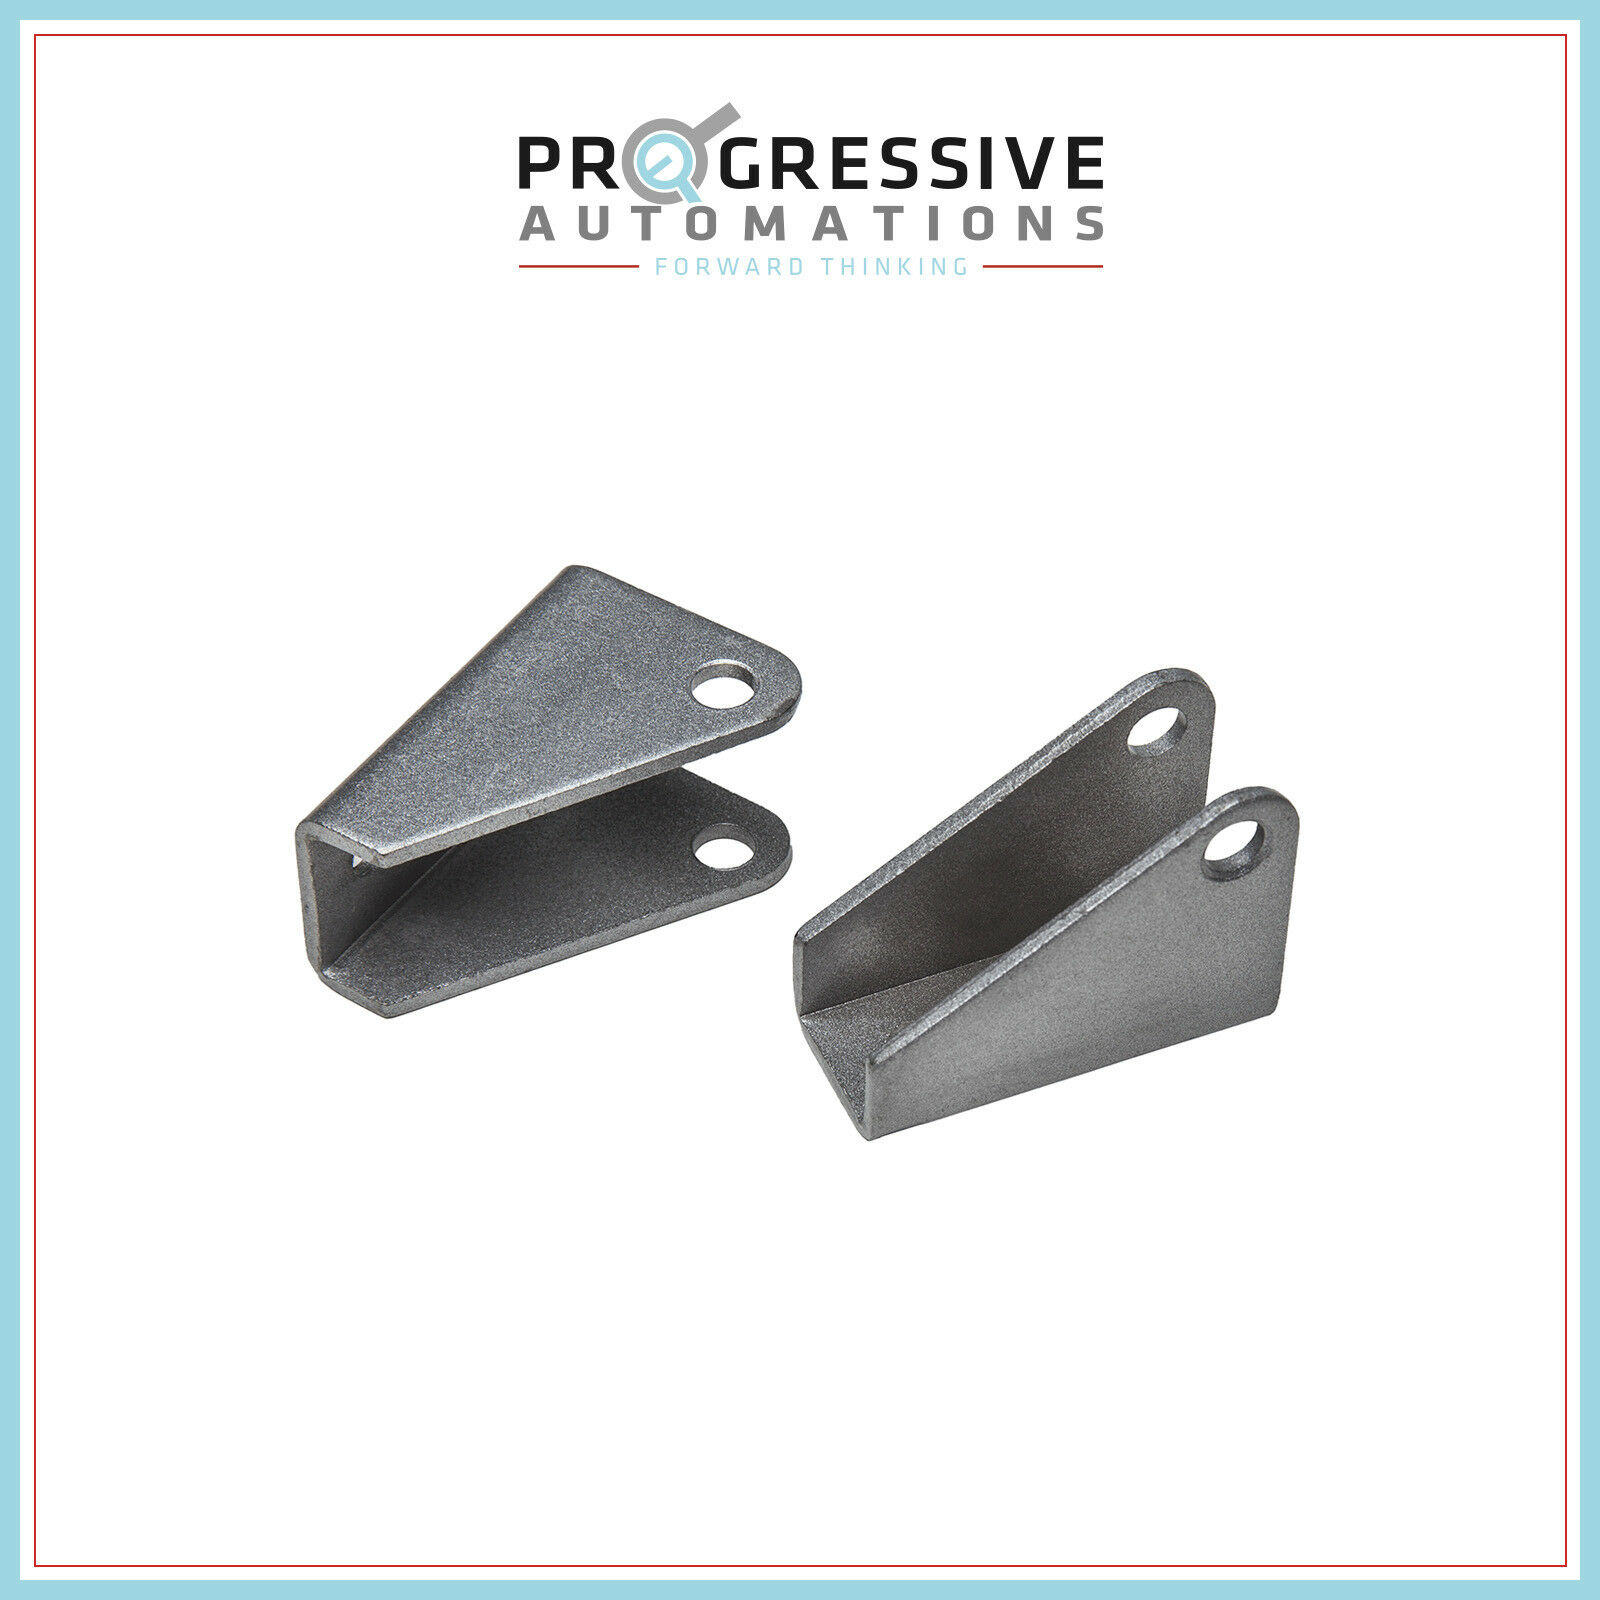 Mounting Brackets Set for Linear Actuators Including Pins Pack of 1pcs